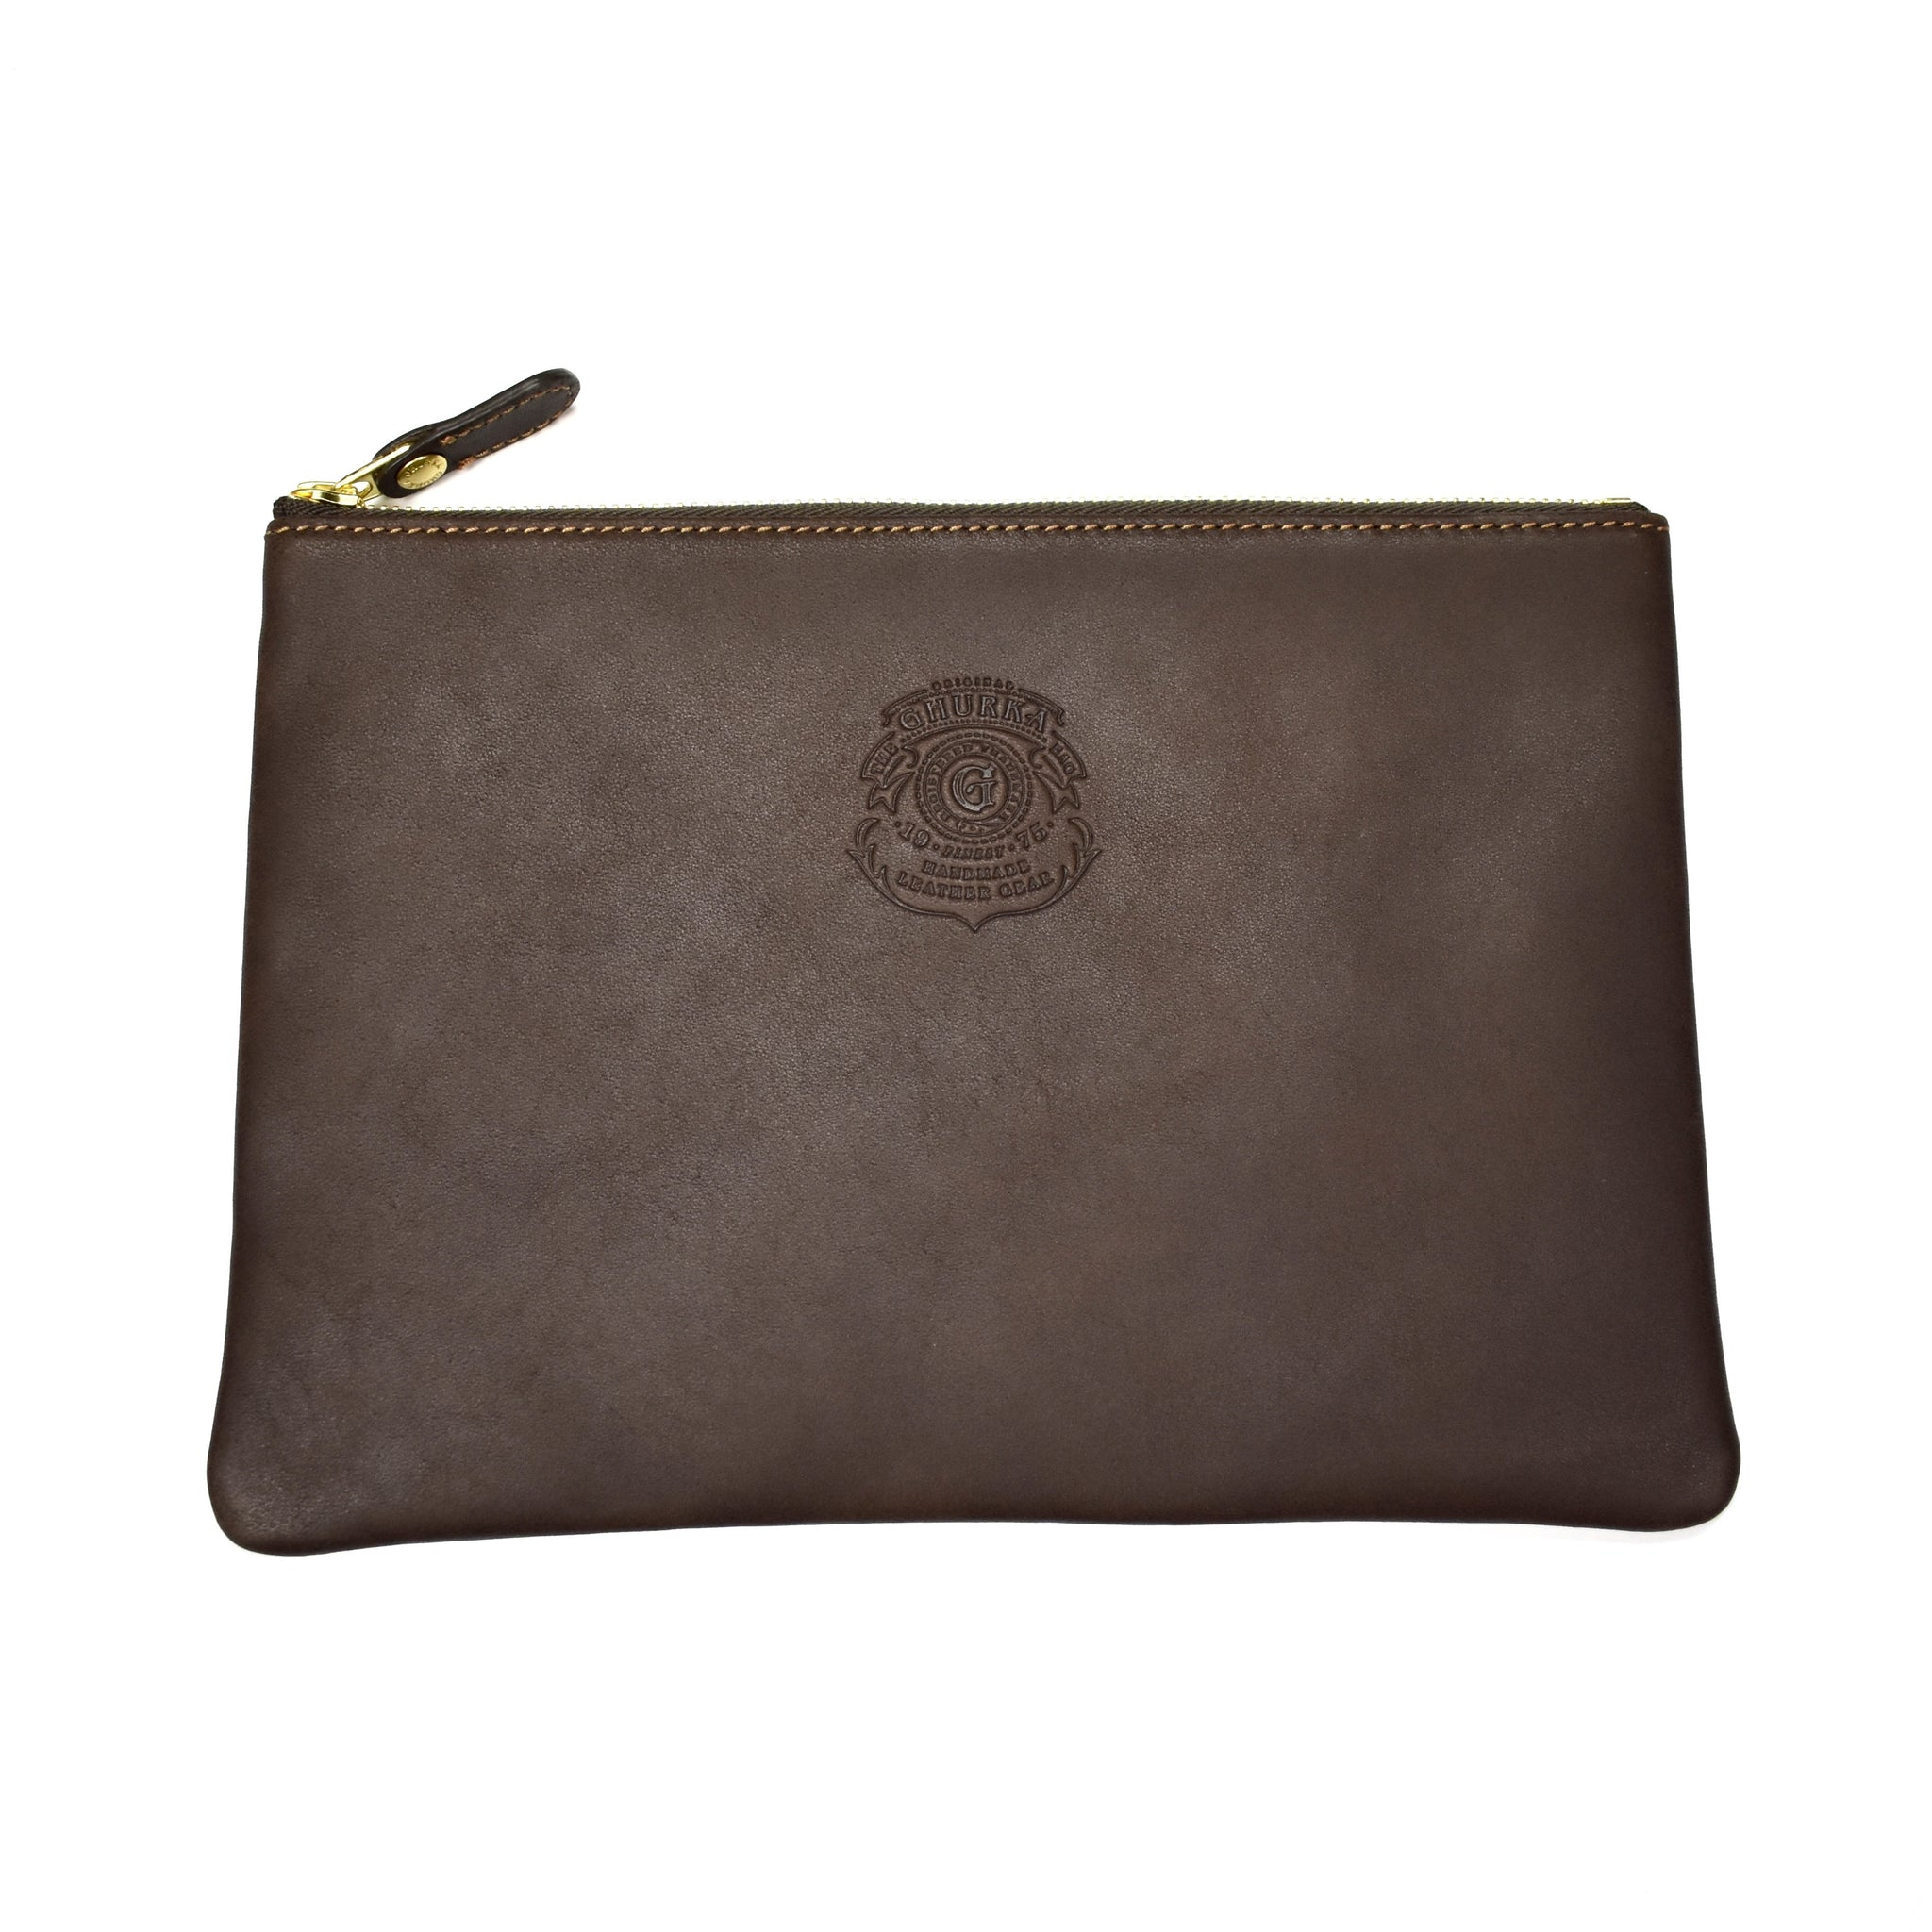 Ghurka - Walnut Brown Leather Pouch No. 64